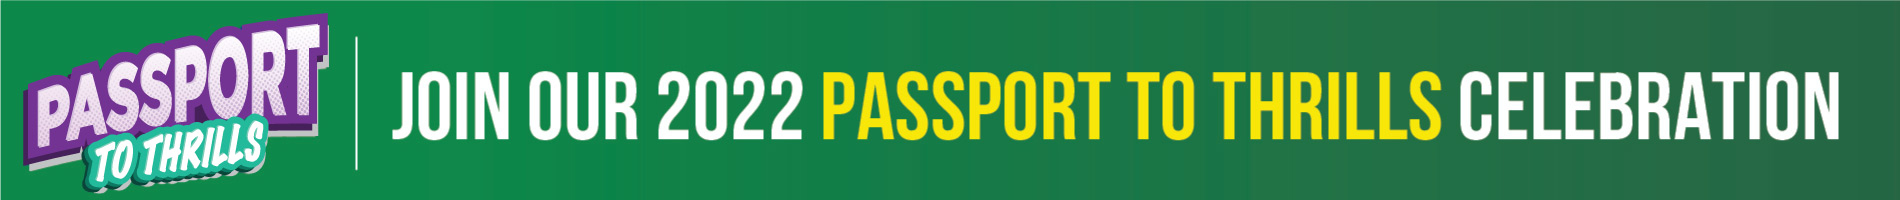 Join our 2022 Passport to Thrills Celebration.